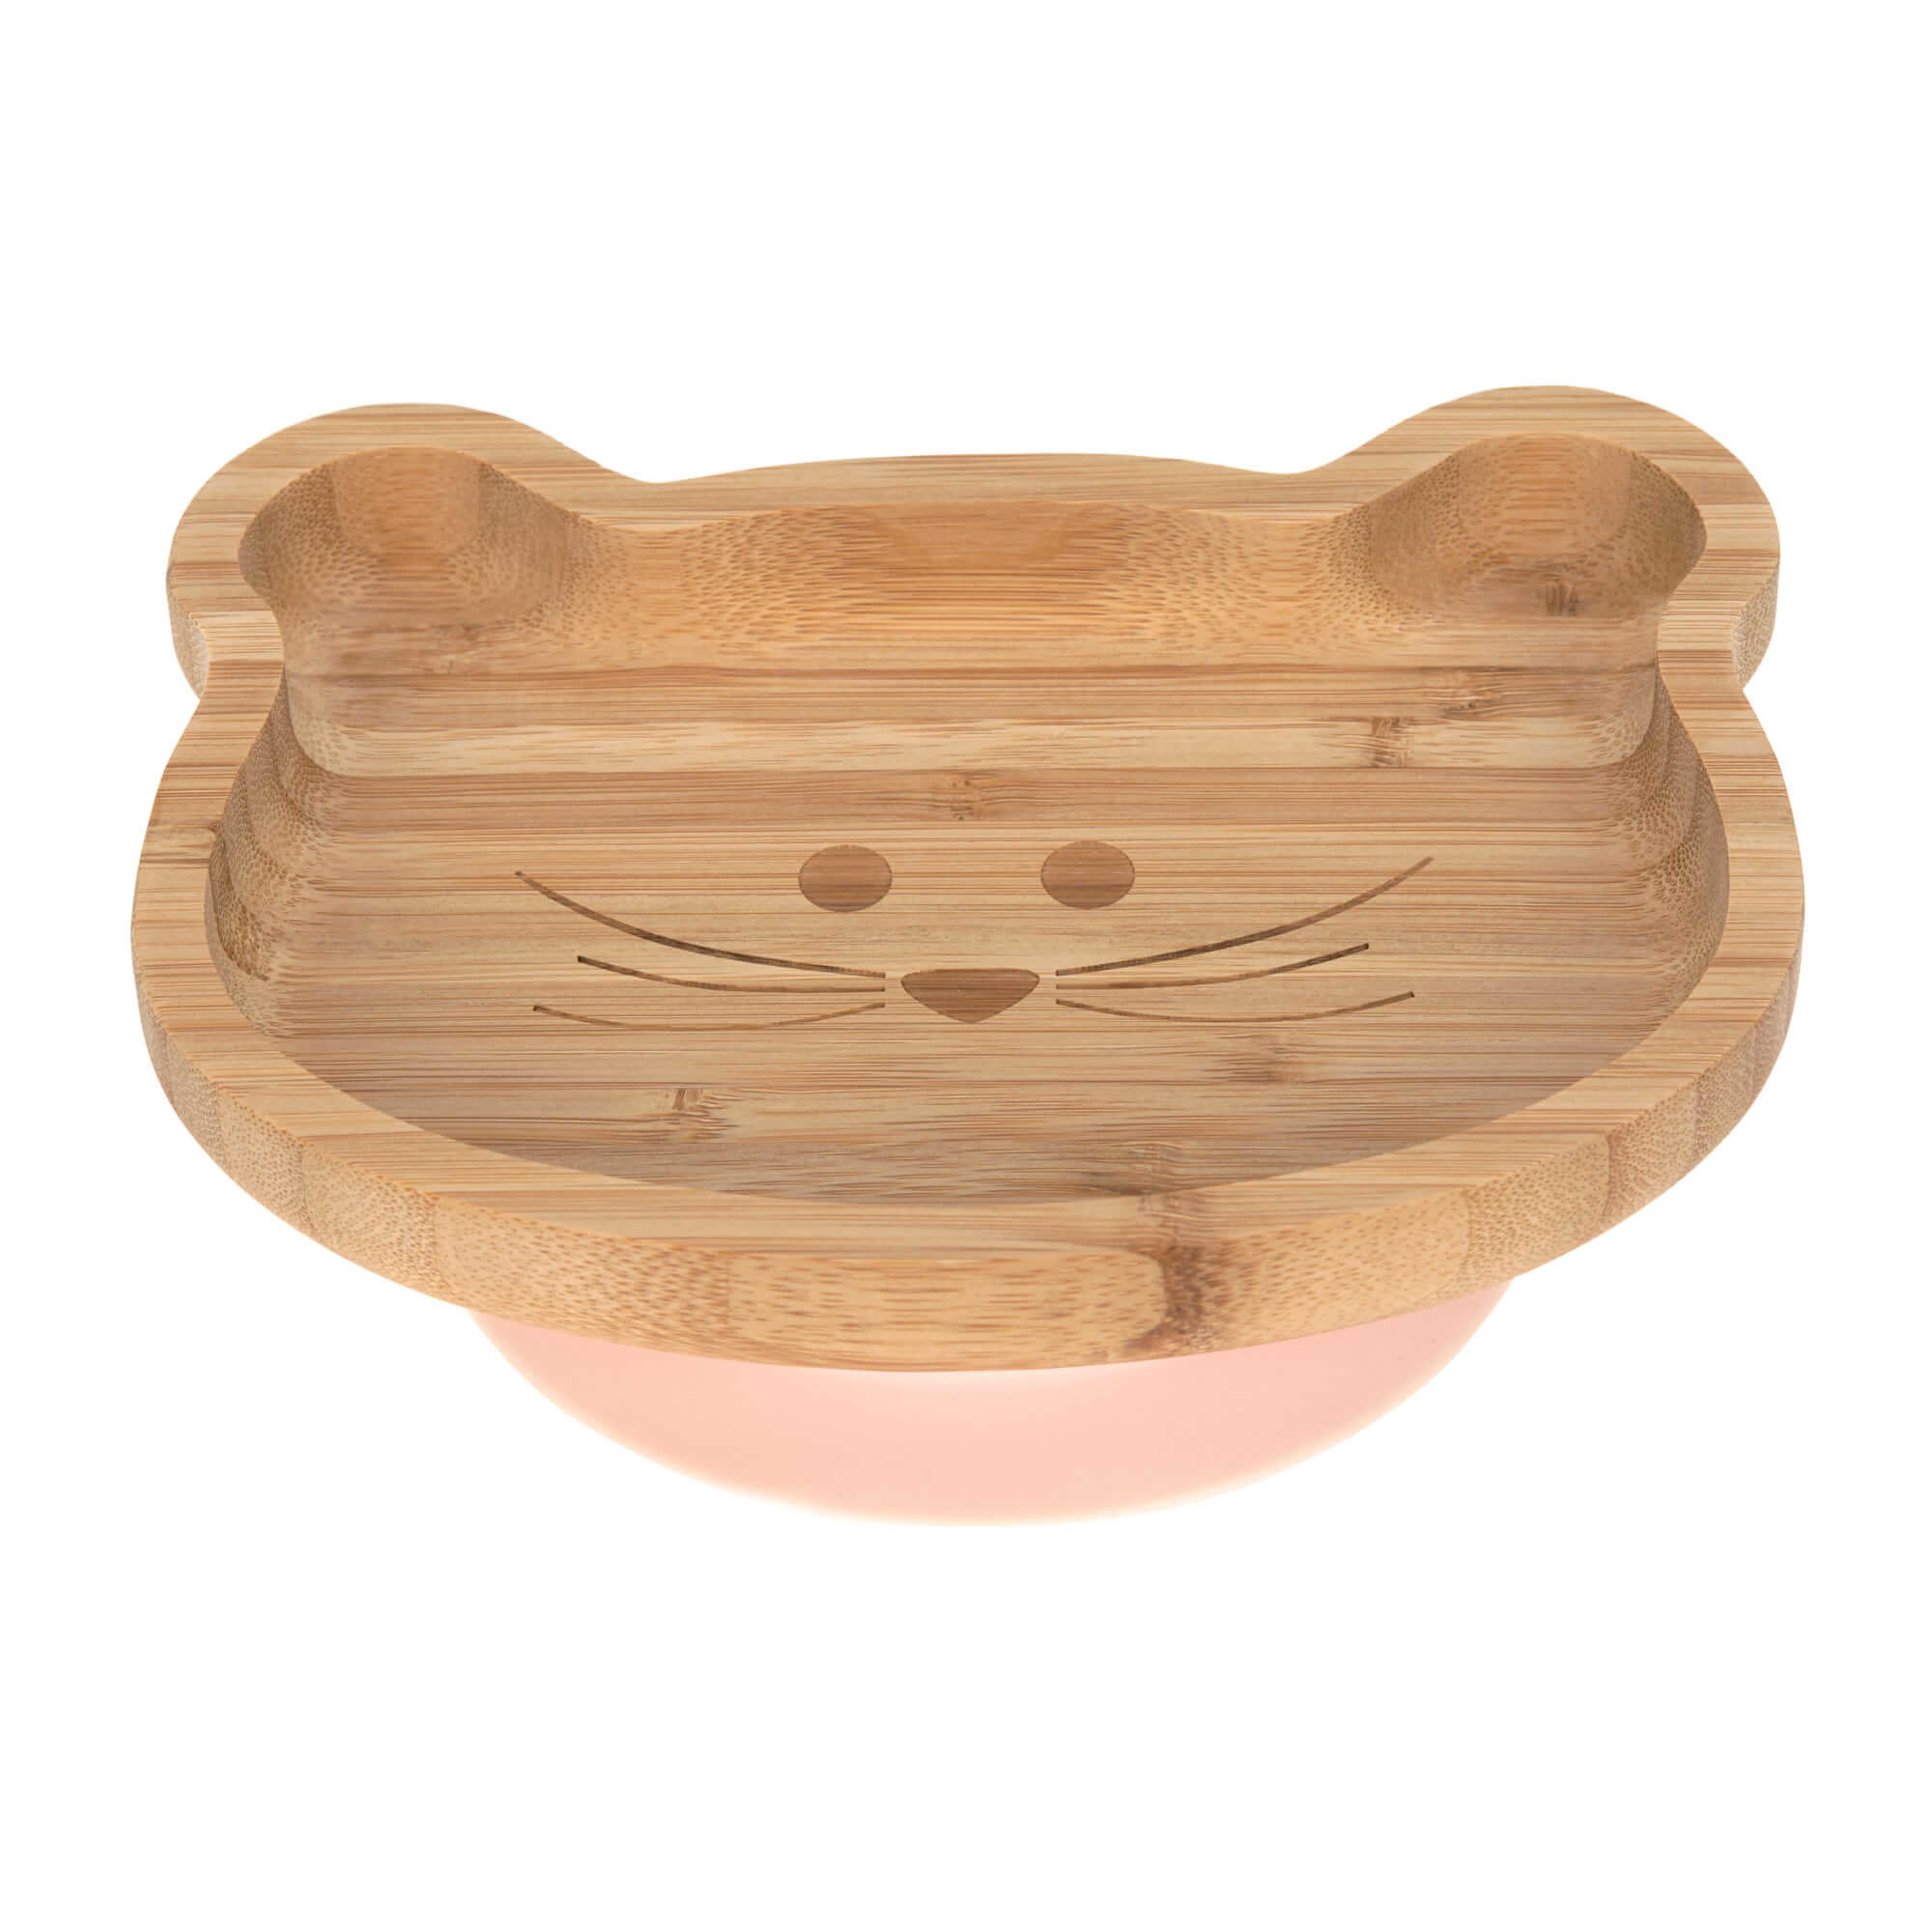 BAMB Lässig 4Babies & Kids Bord bamboo/hout met zuignap silicone little chums mouse